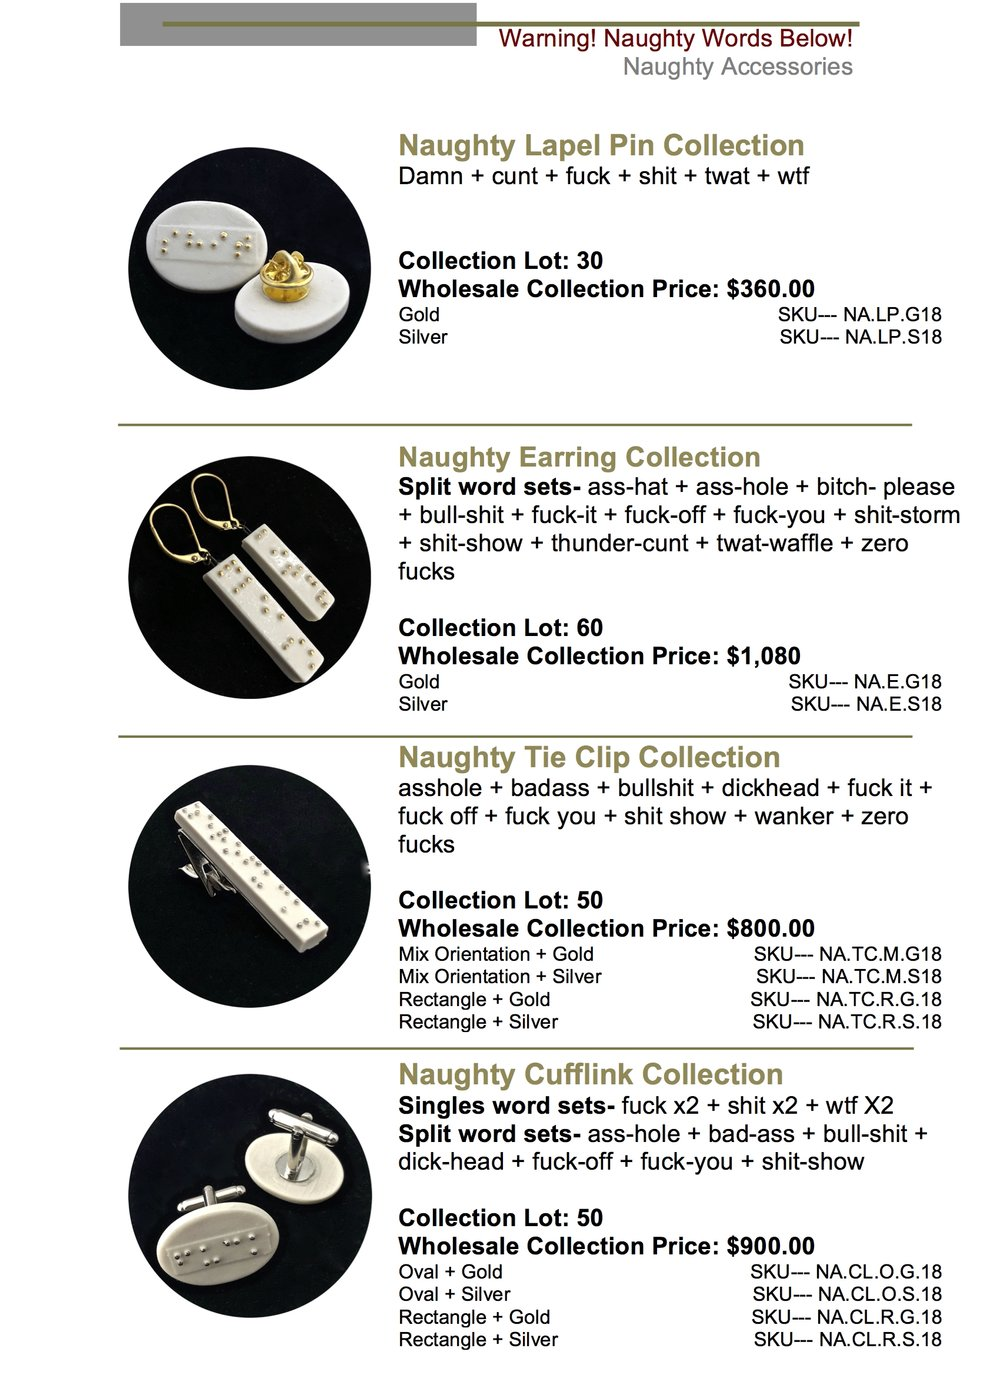 Wholesale Catalog pg 7.jpg